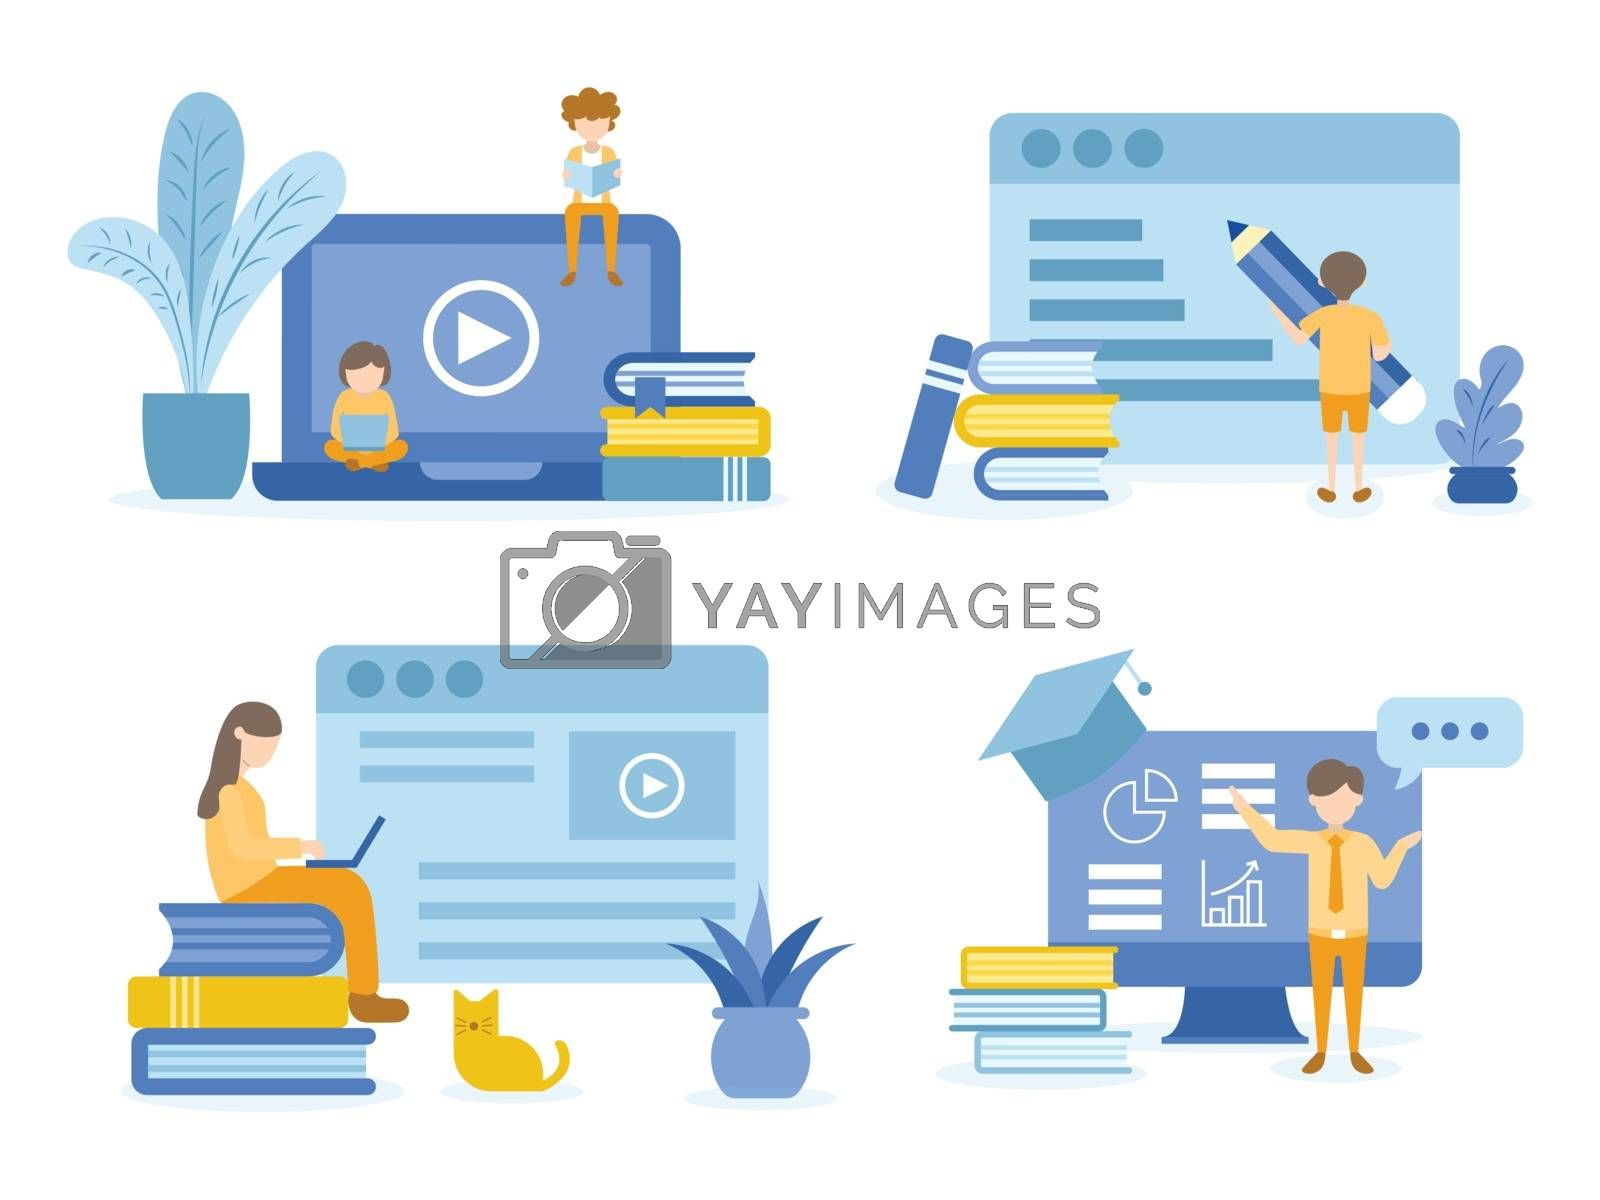 Student reading and learning online courses. Man training online courses. Concept Illustration of education for training, studying, e-learning, and online course.